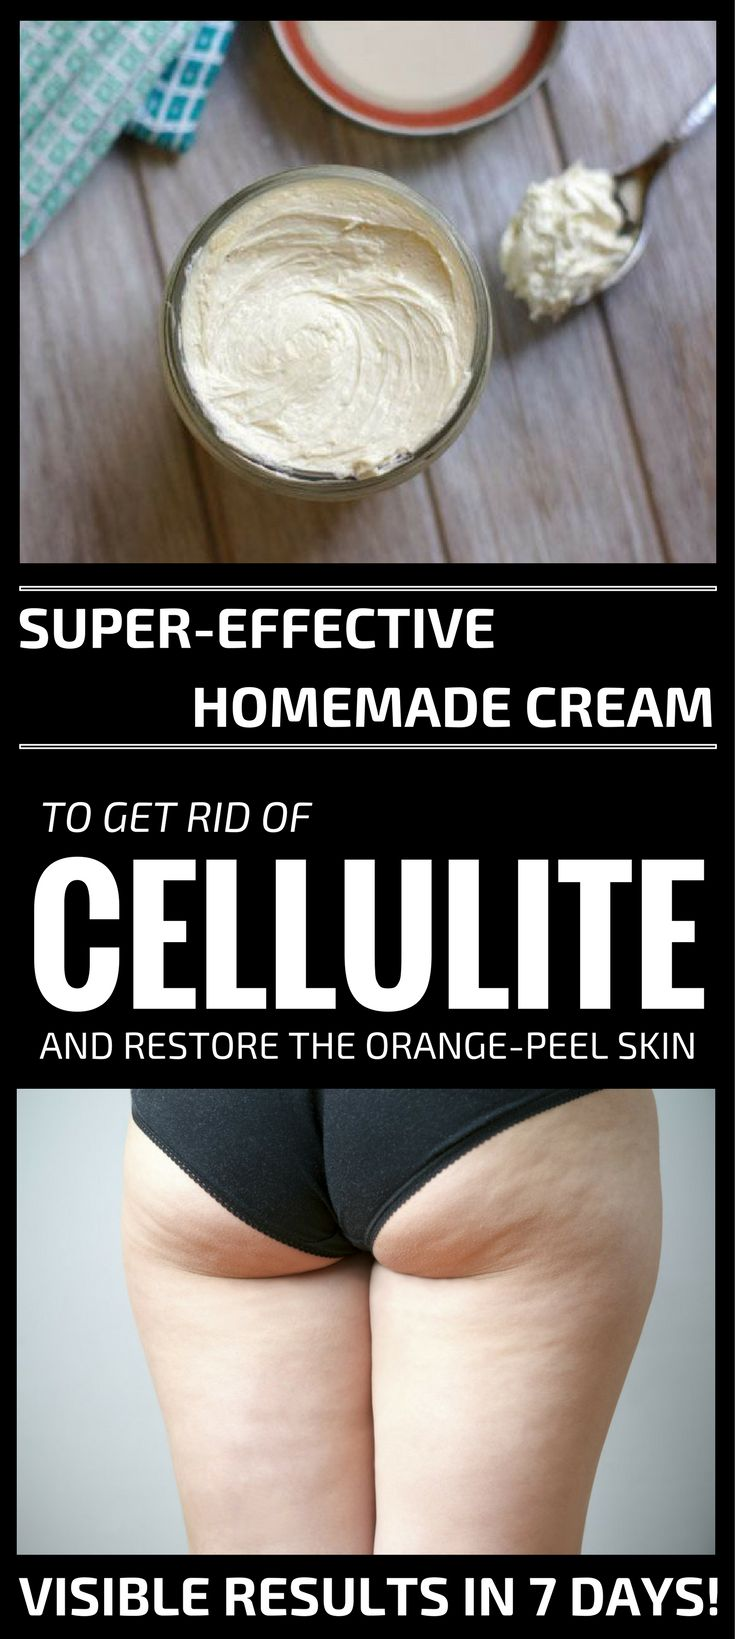 Super-Effective Homemade Cream To Get Rid Of Cellulite And Restore The Orange-Peel Skin